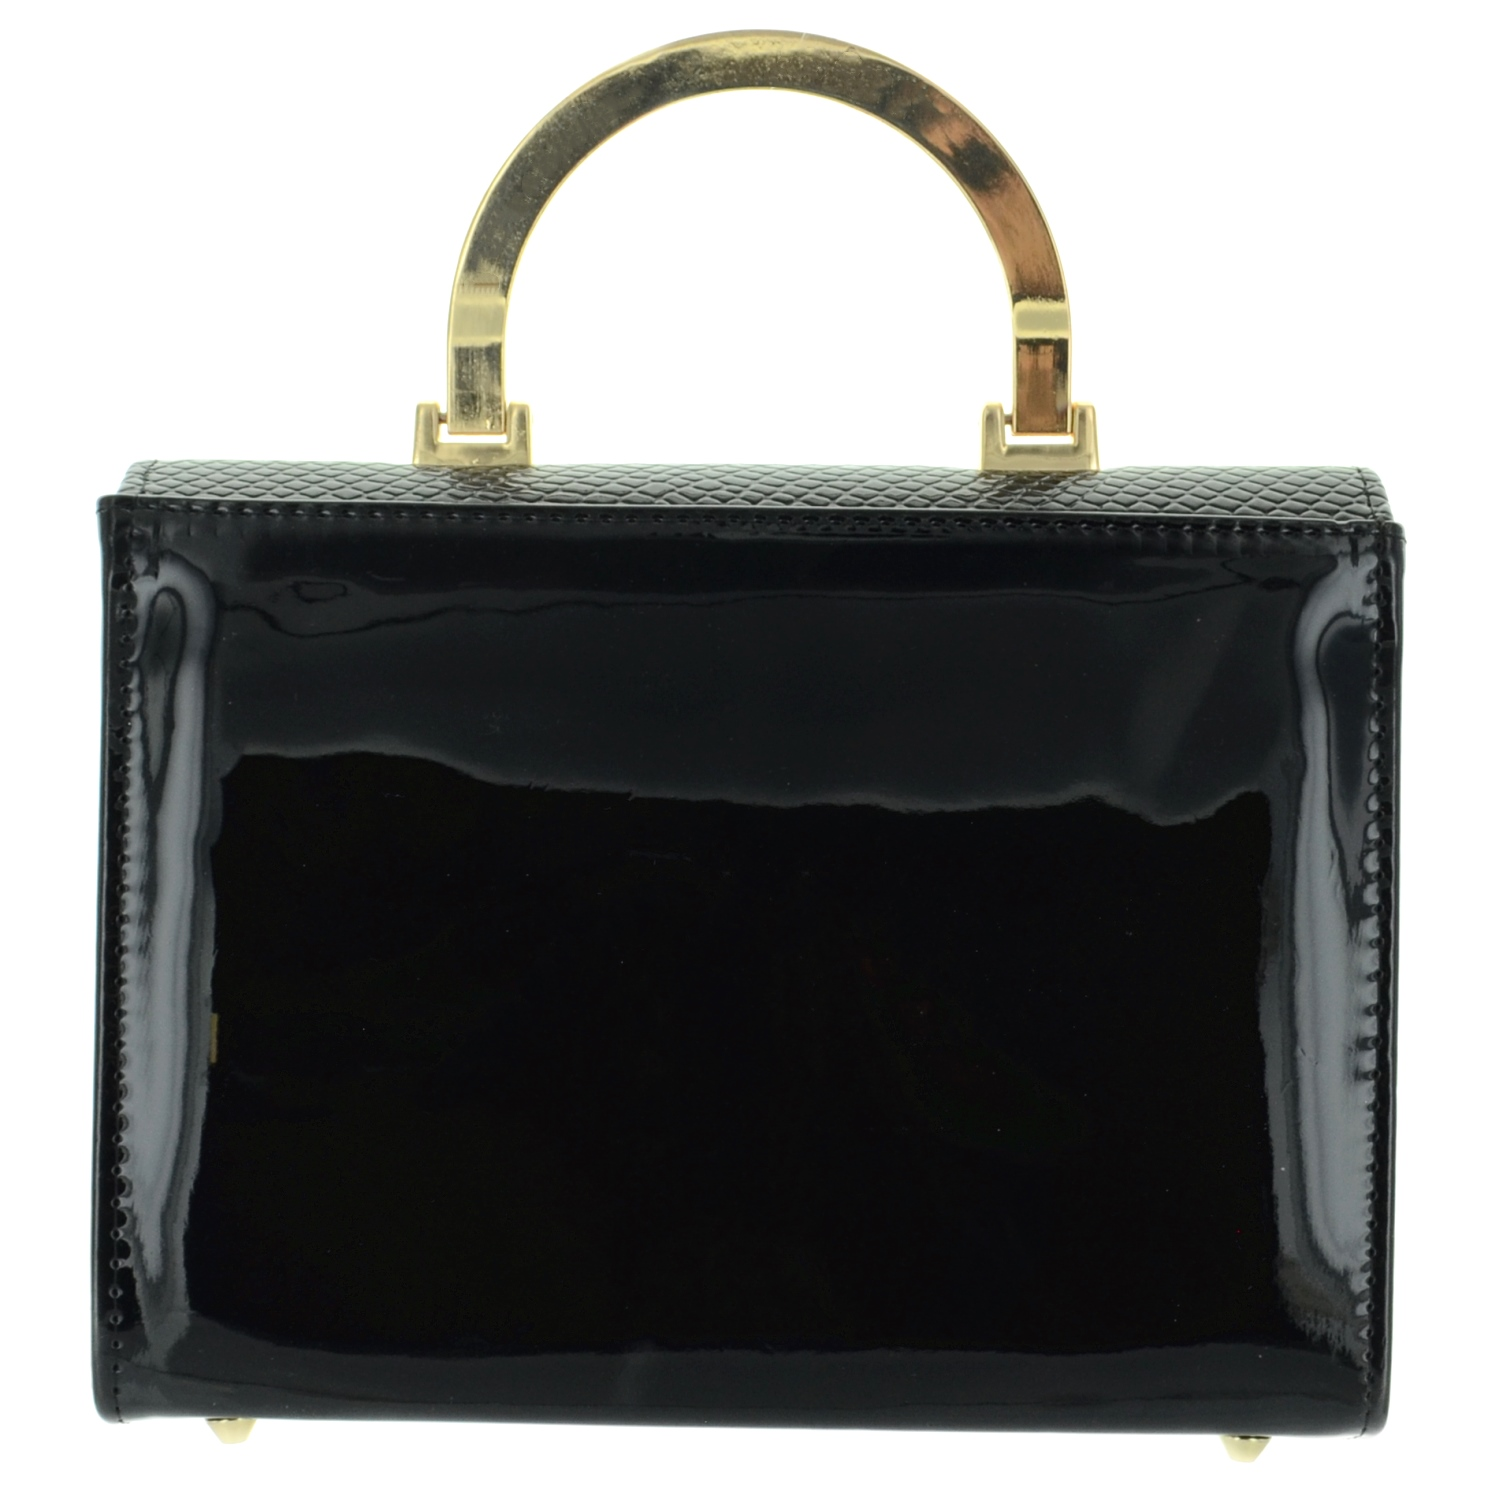 Vintage Inspired Faux Patent Leather Clutch